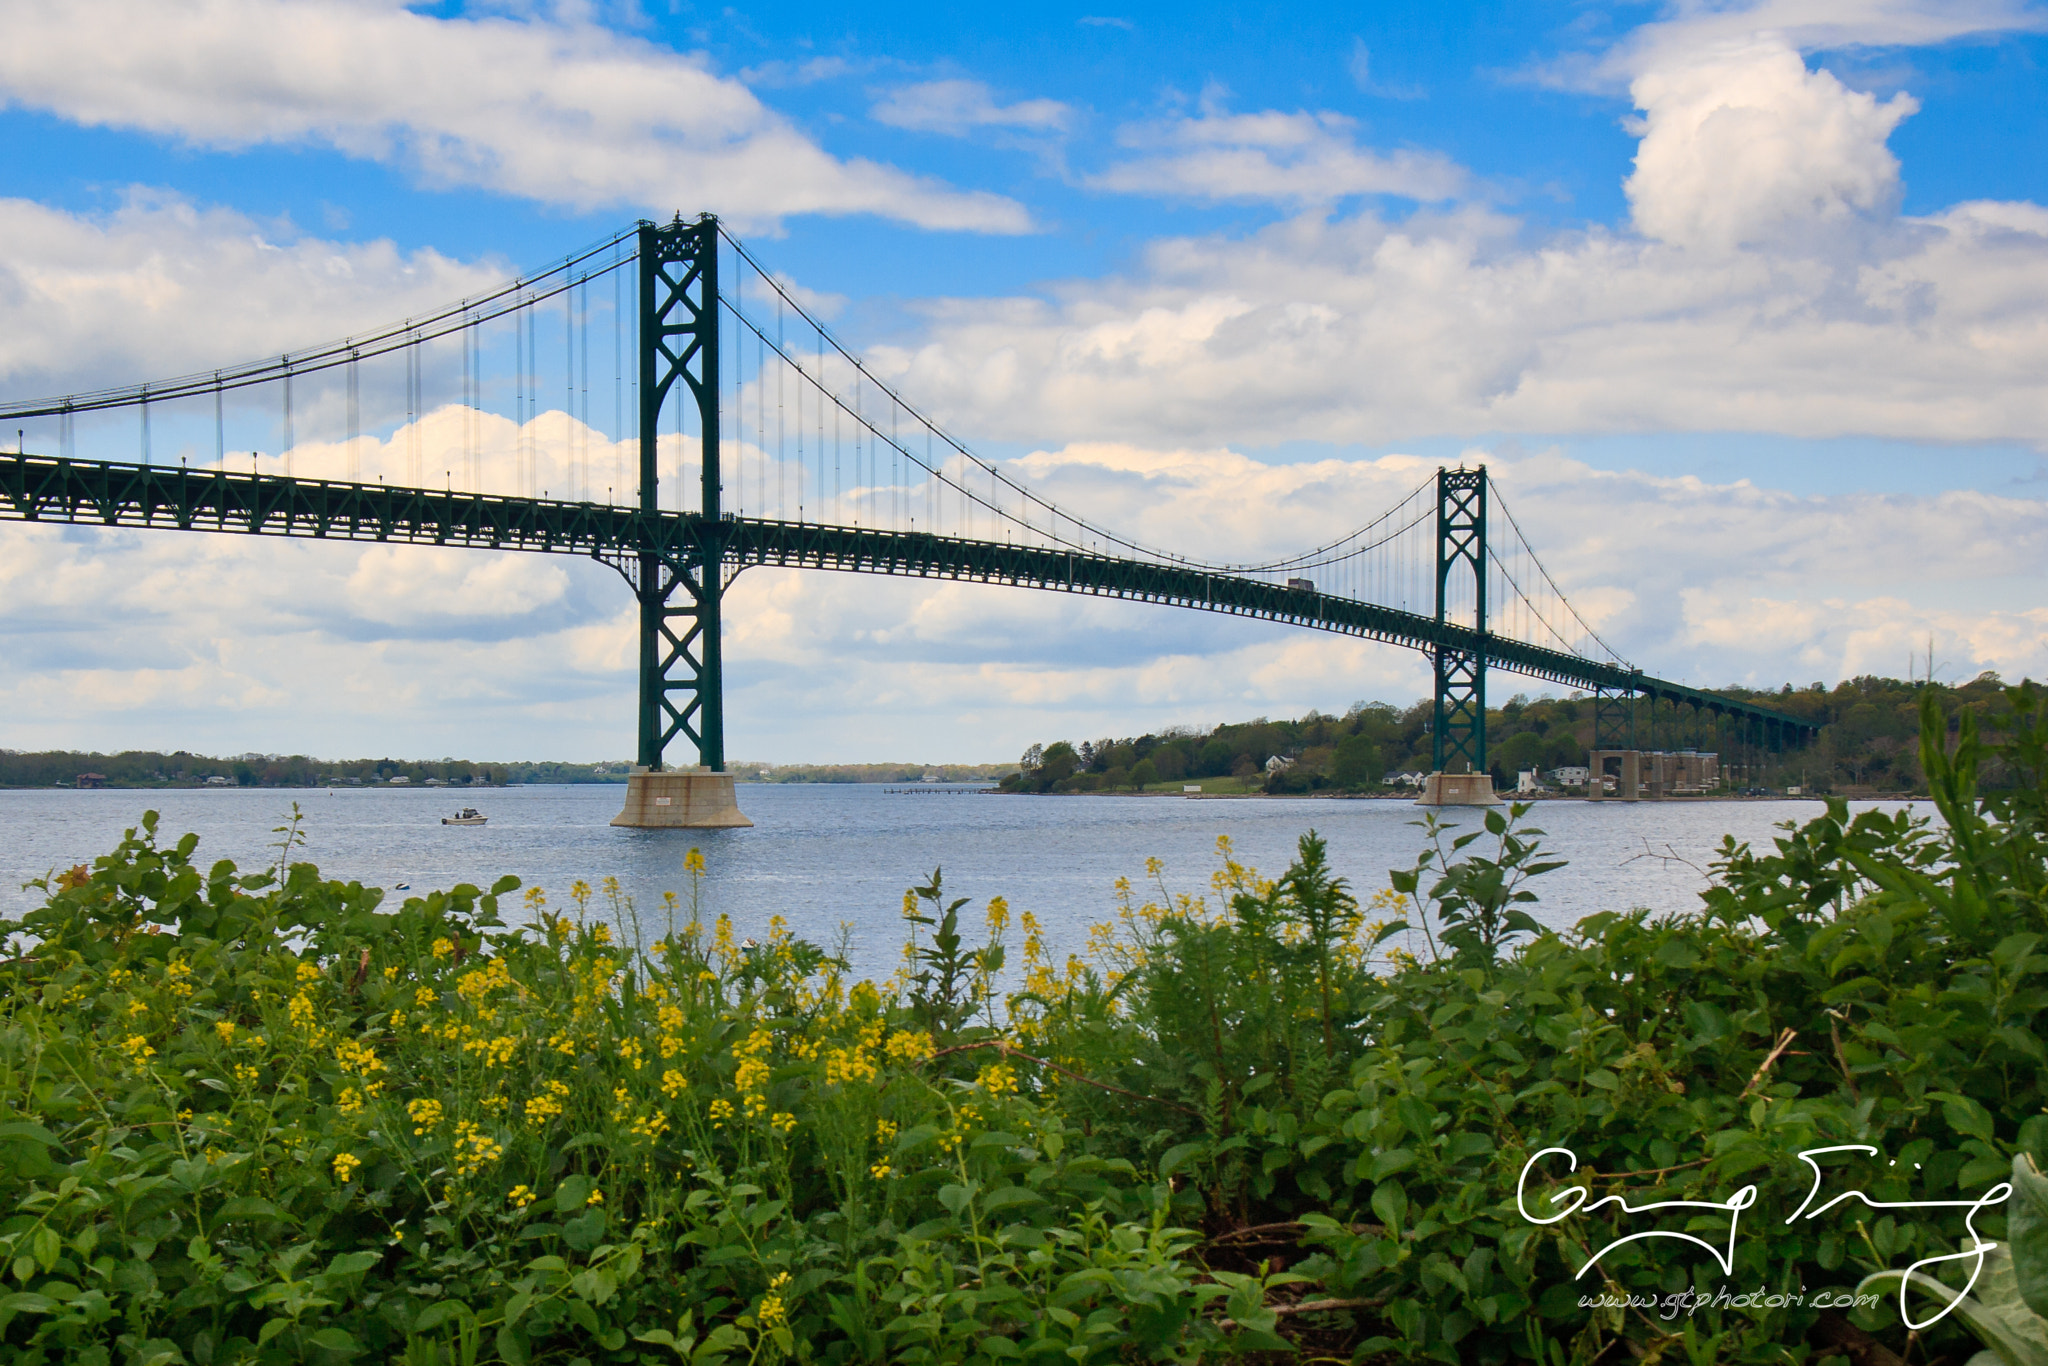 Photograph Mt. Hope Bridge by Gregory Thivierge on 500px